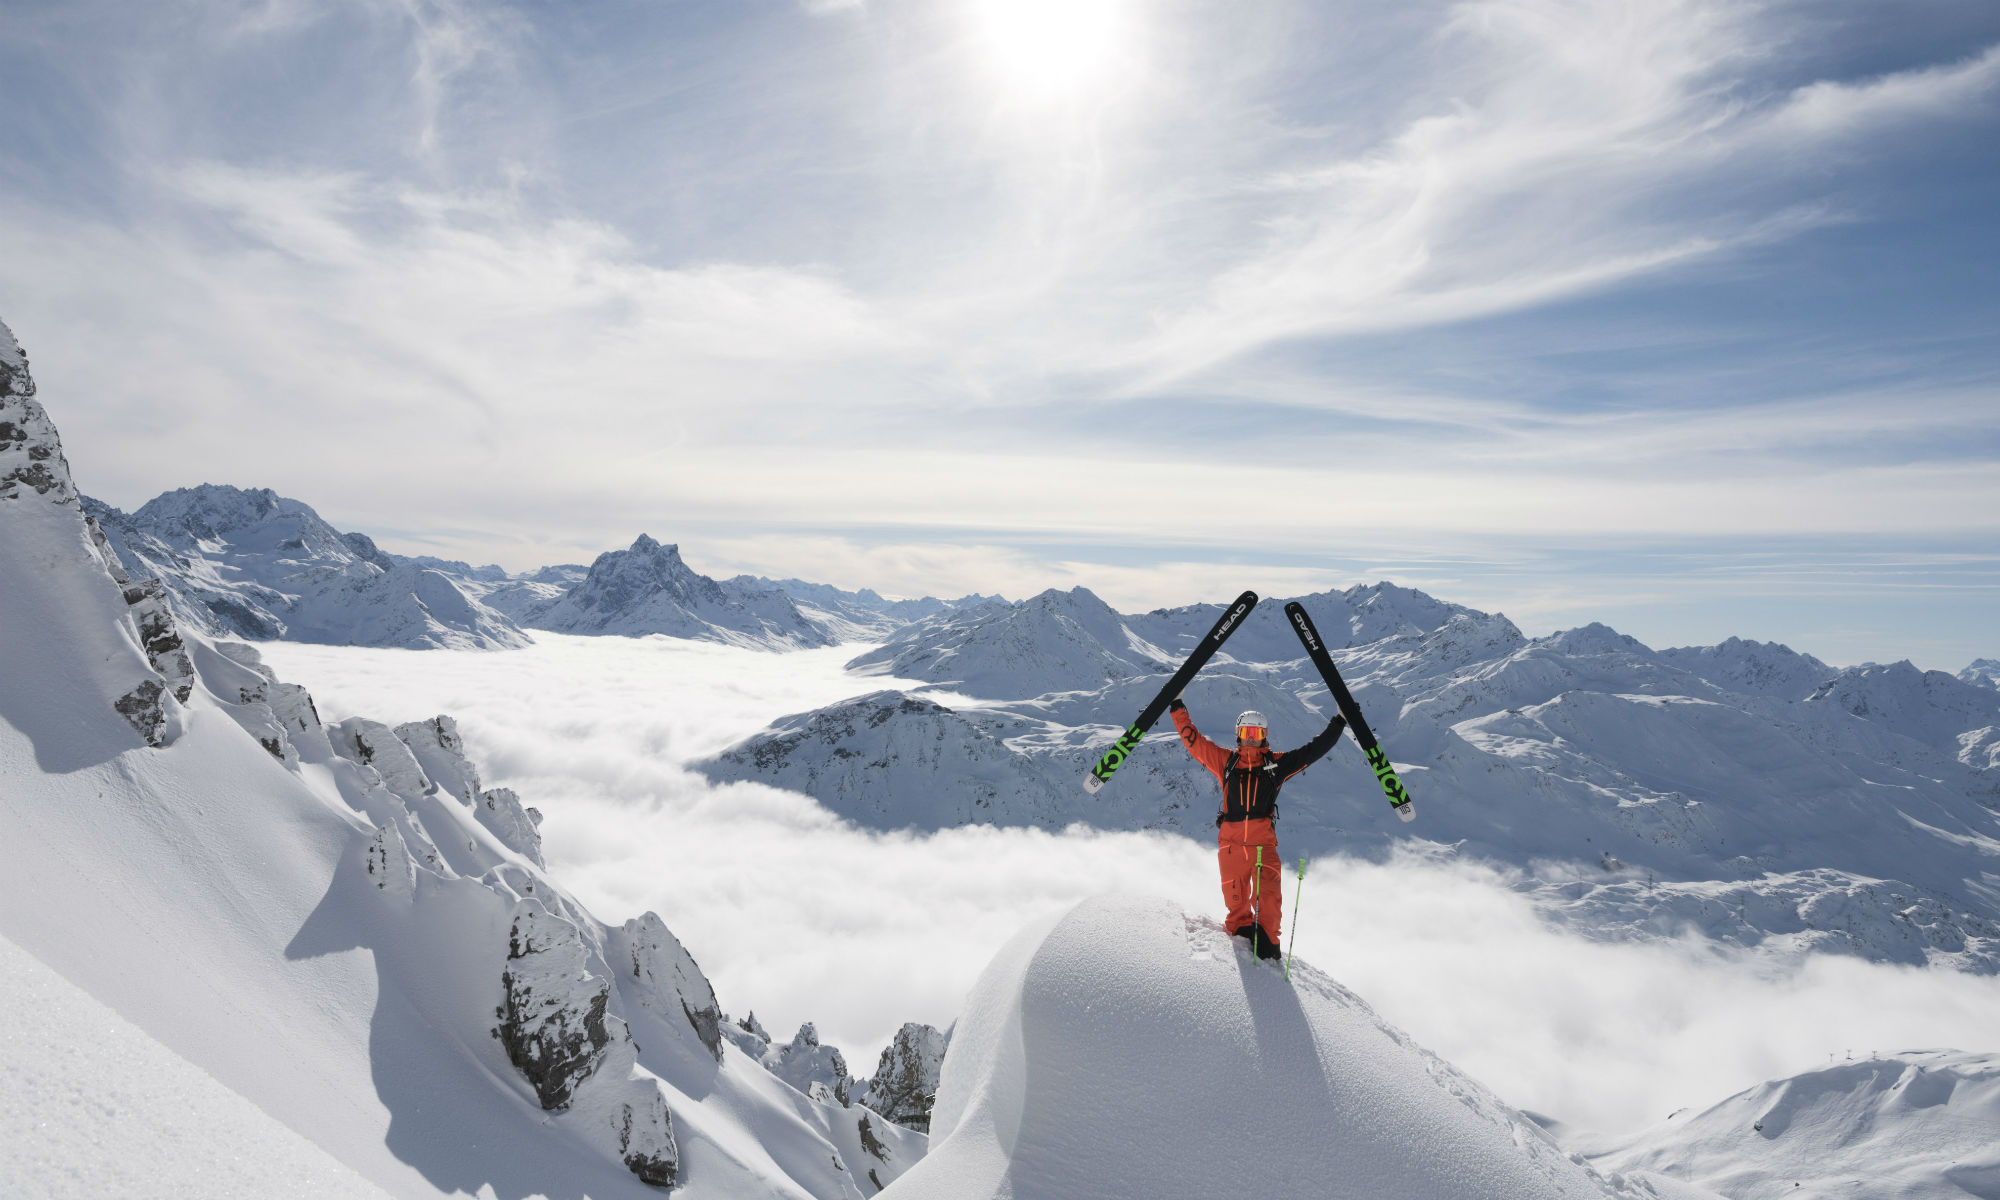 A freeride skier is posing on a ledge on the Arlberg in front of a snowy mountainous landscape.